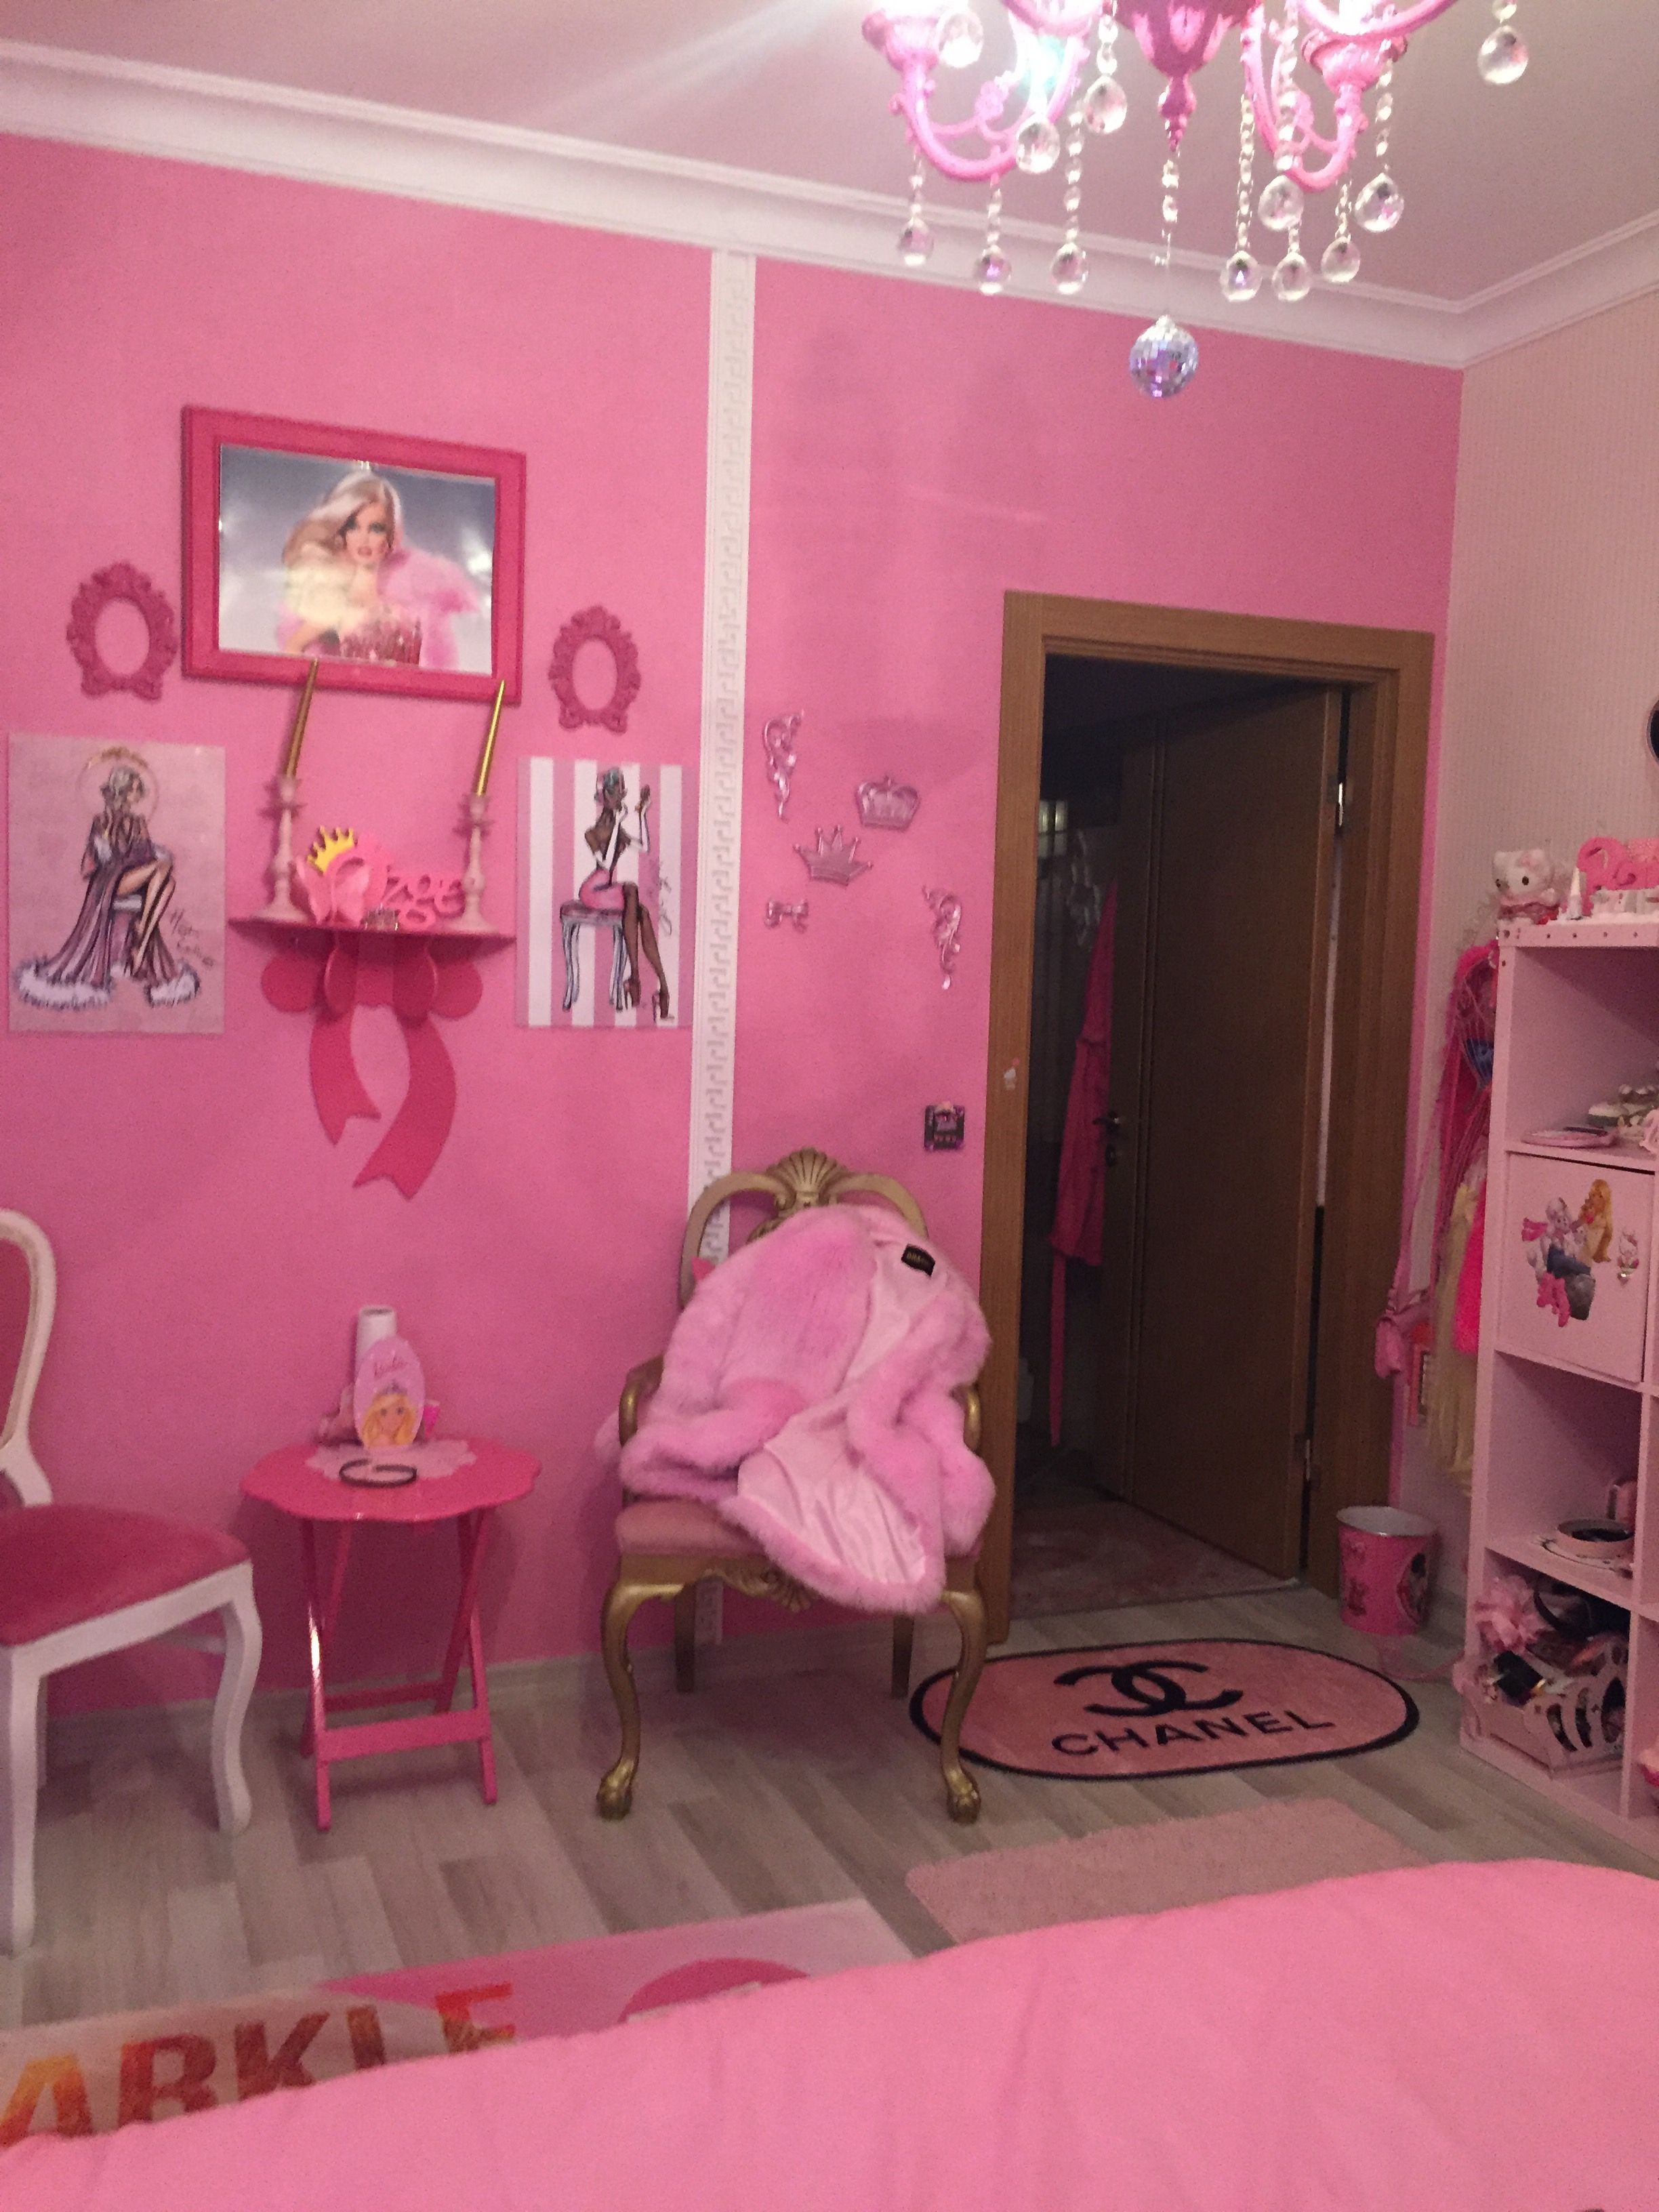 Pink Bedroom In 2020 Pink Room Aesthetic Room Decor Home Decor